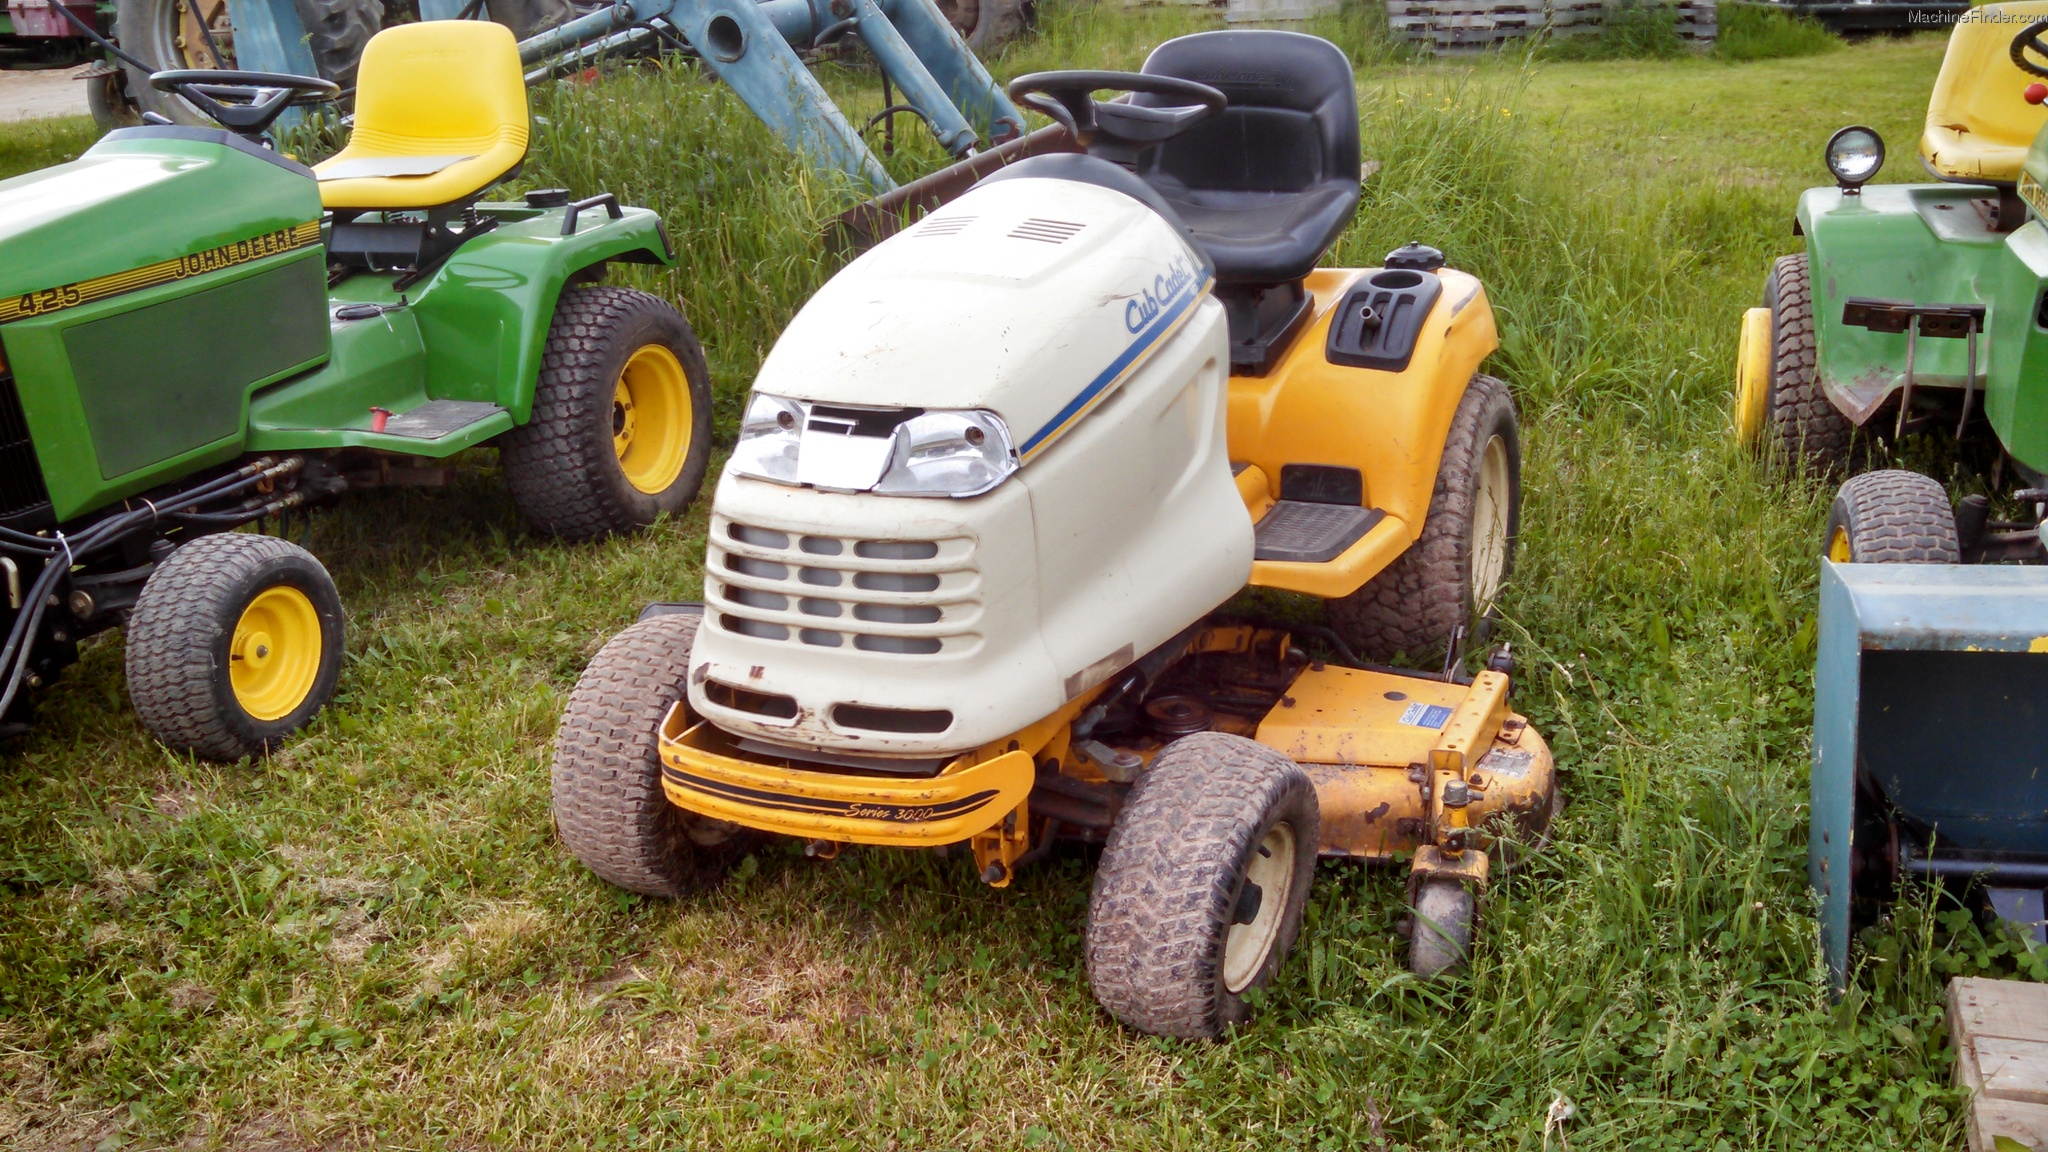 Cub Cadet Lawn Mowers Dealers : Cub cadet hds lawn garden and commercial mowing